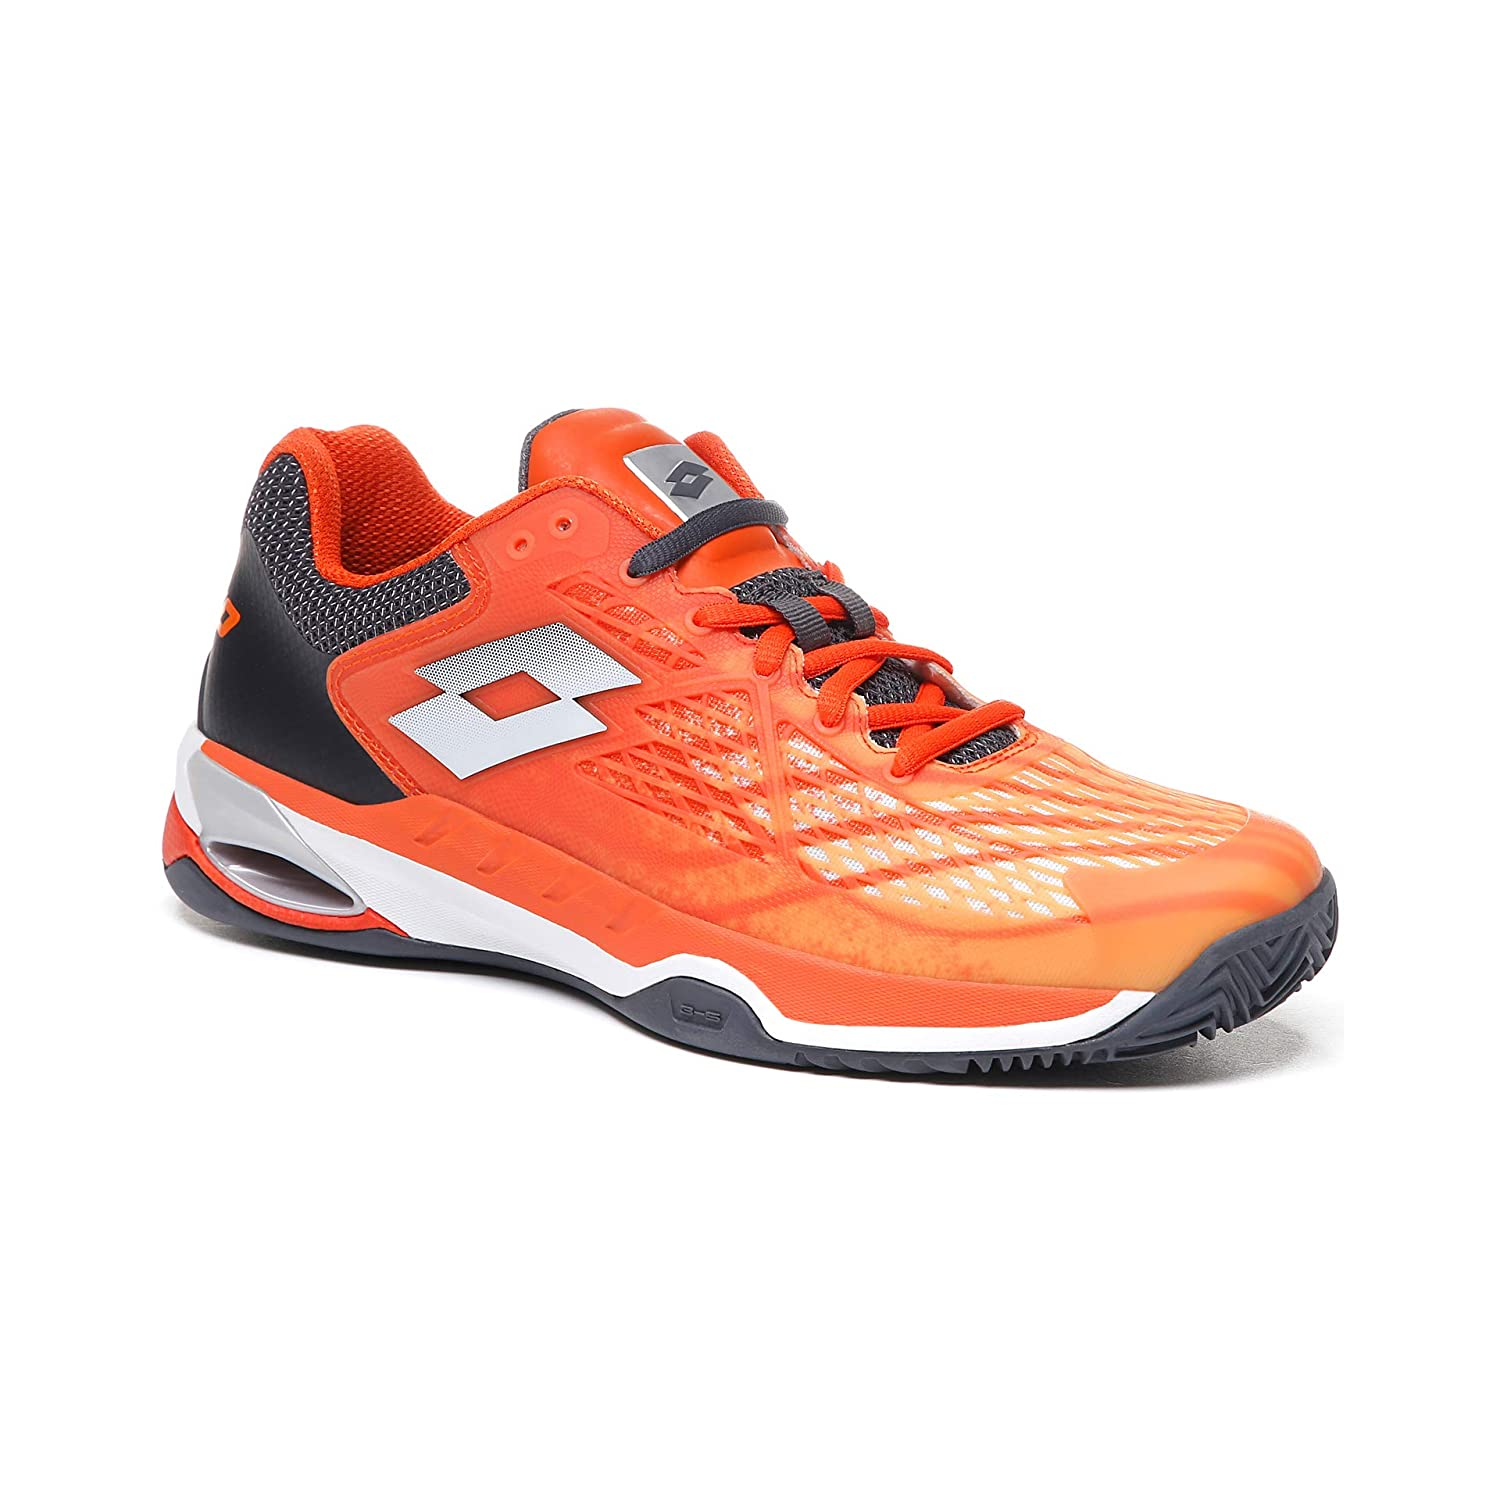 Lotto Mirage 100 Clay Court Shoe Men Orange: Amazon.es: Deportes y ...